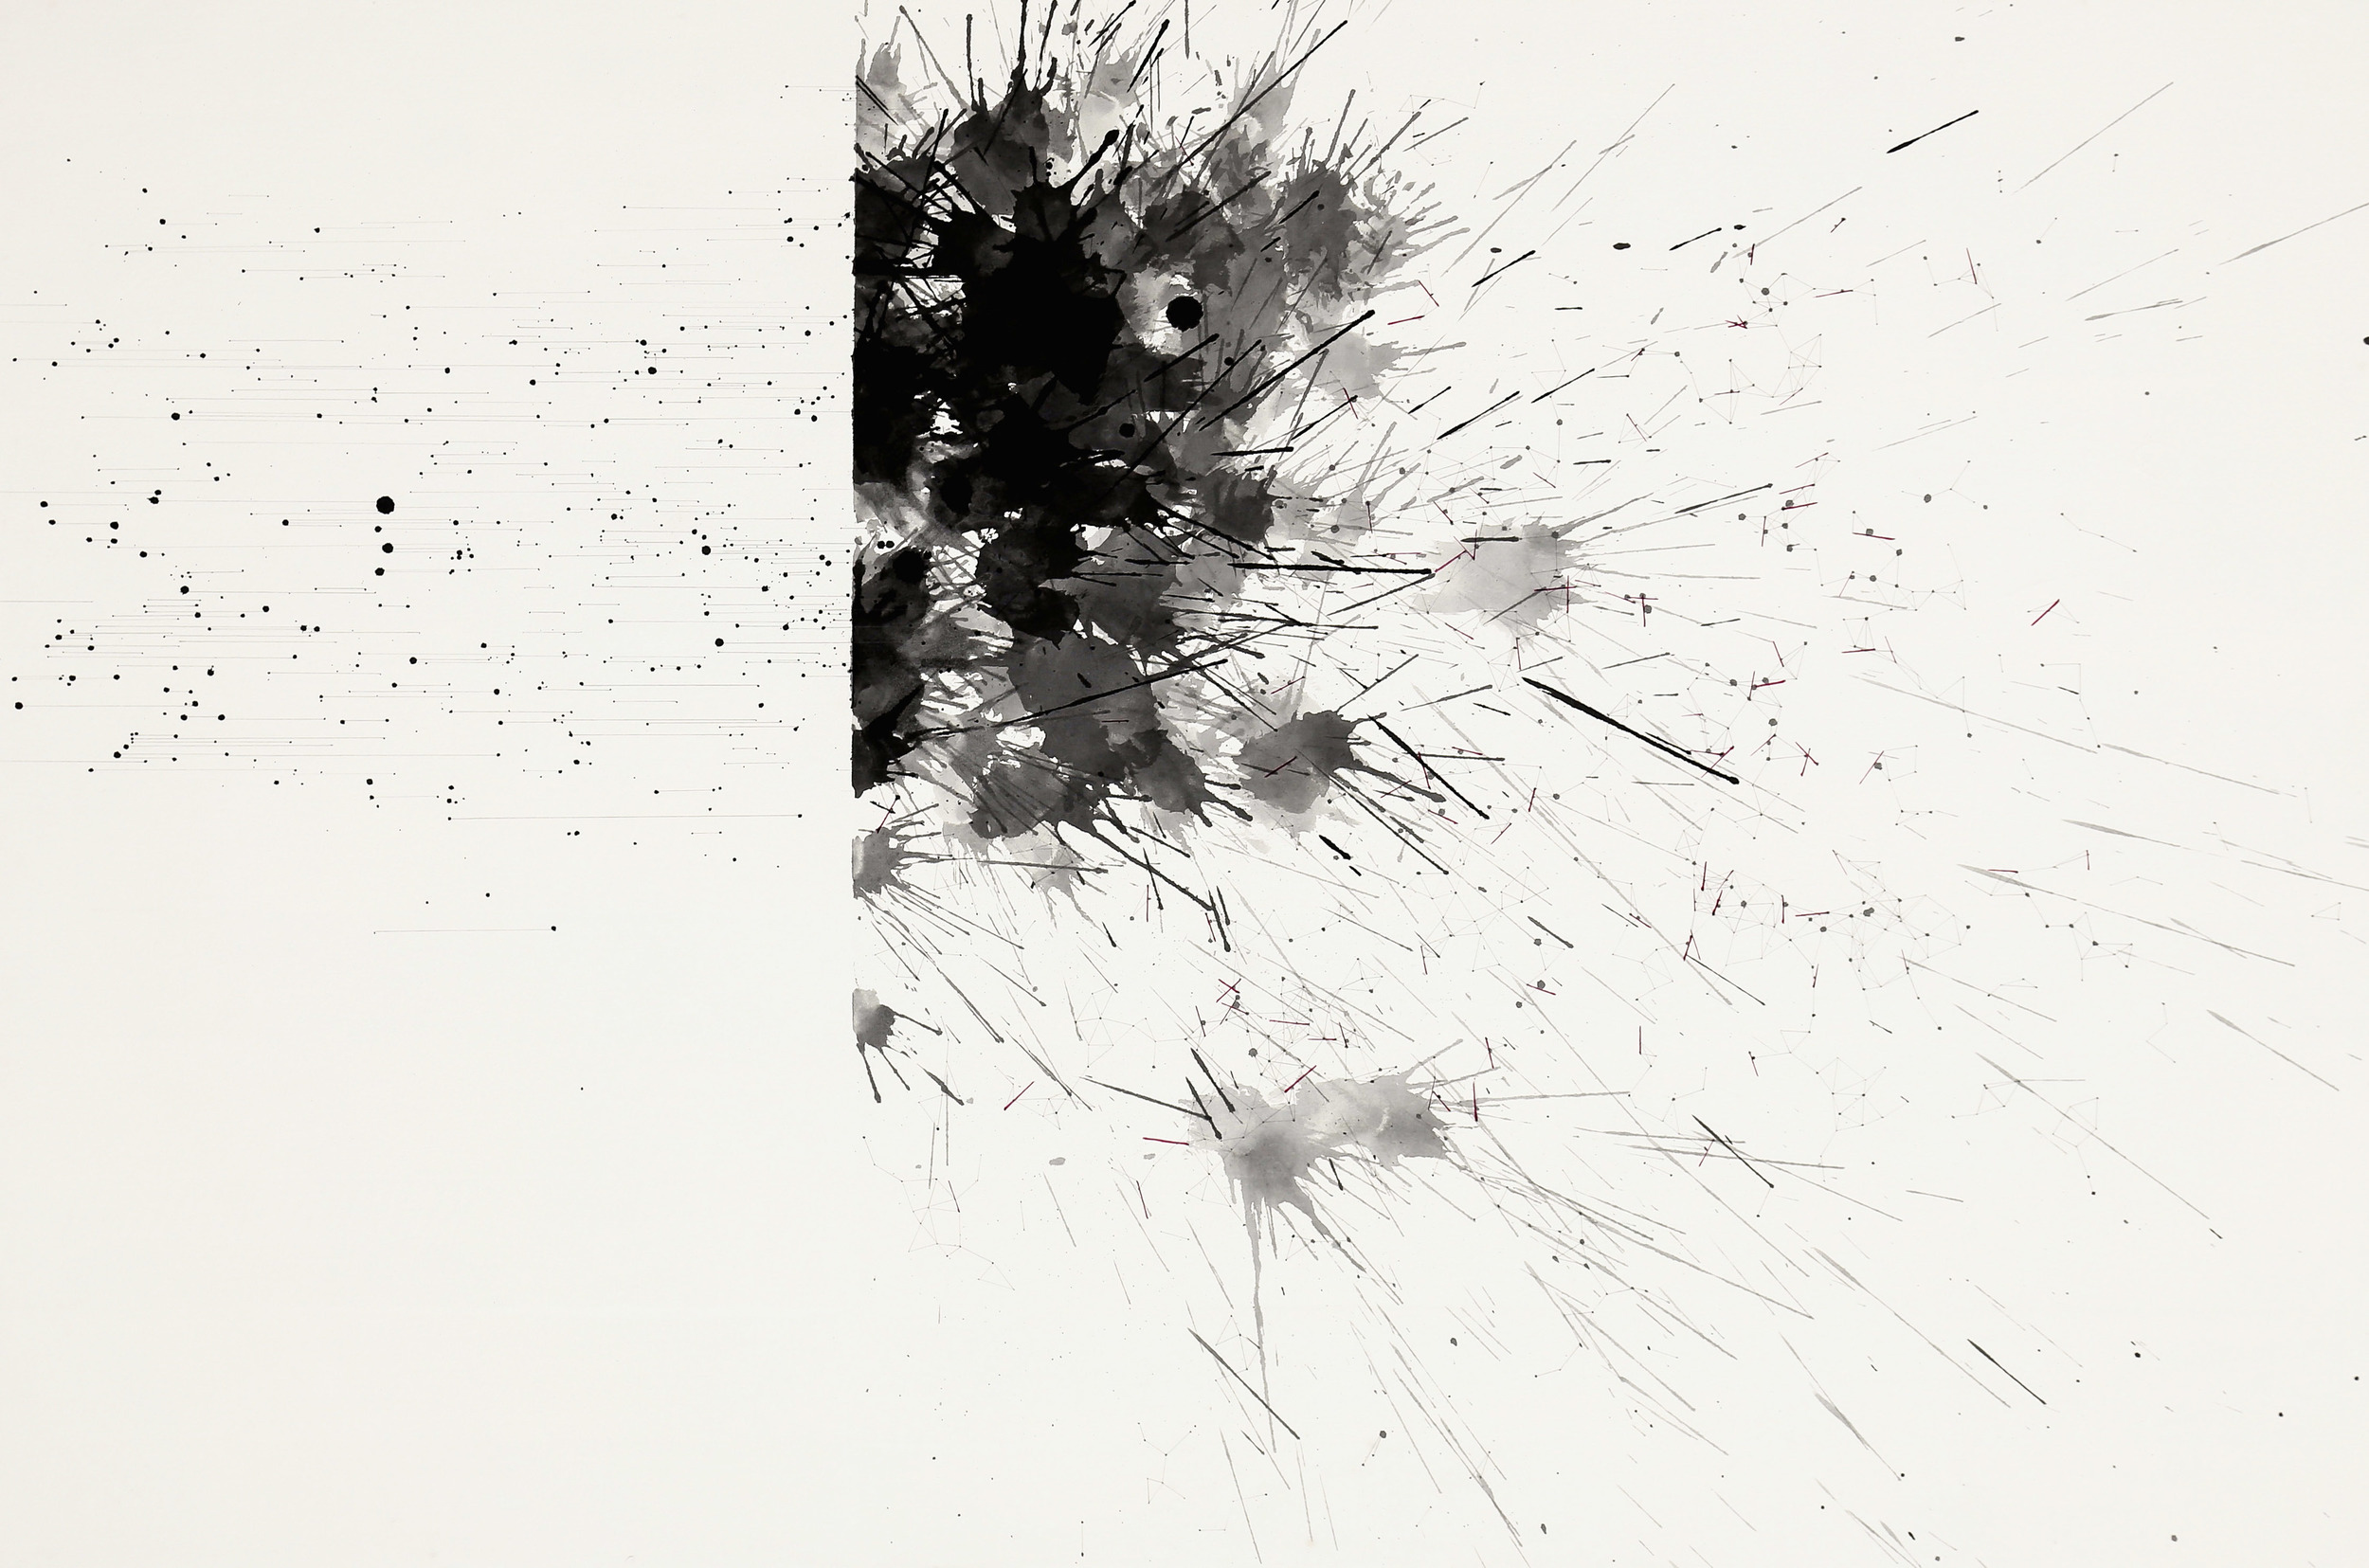 Chaos to order 2014. Ink, color pencil, and pencil on paper. 60 x 90 cm